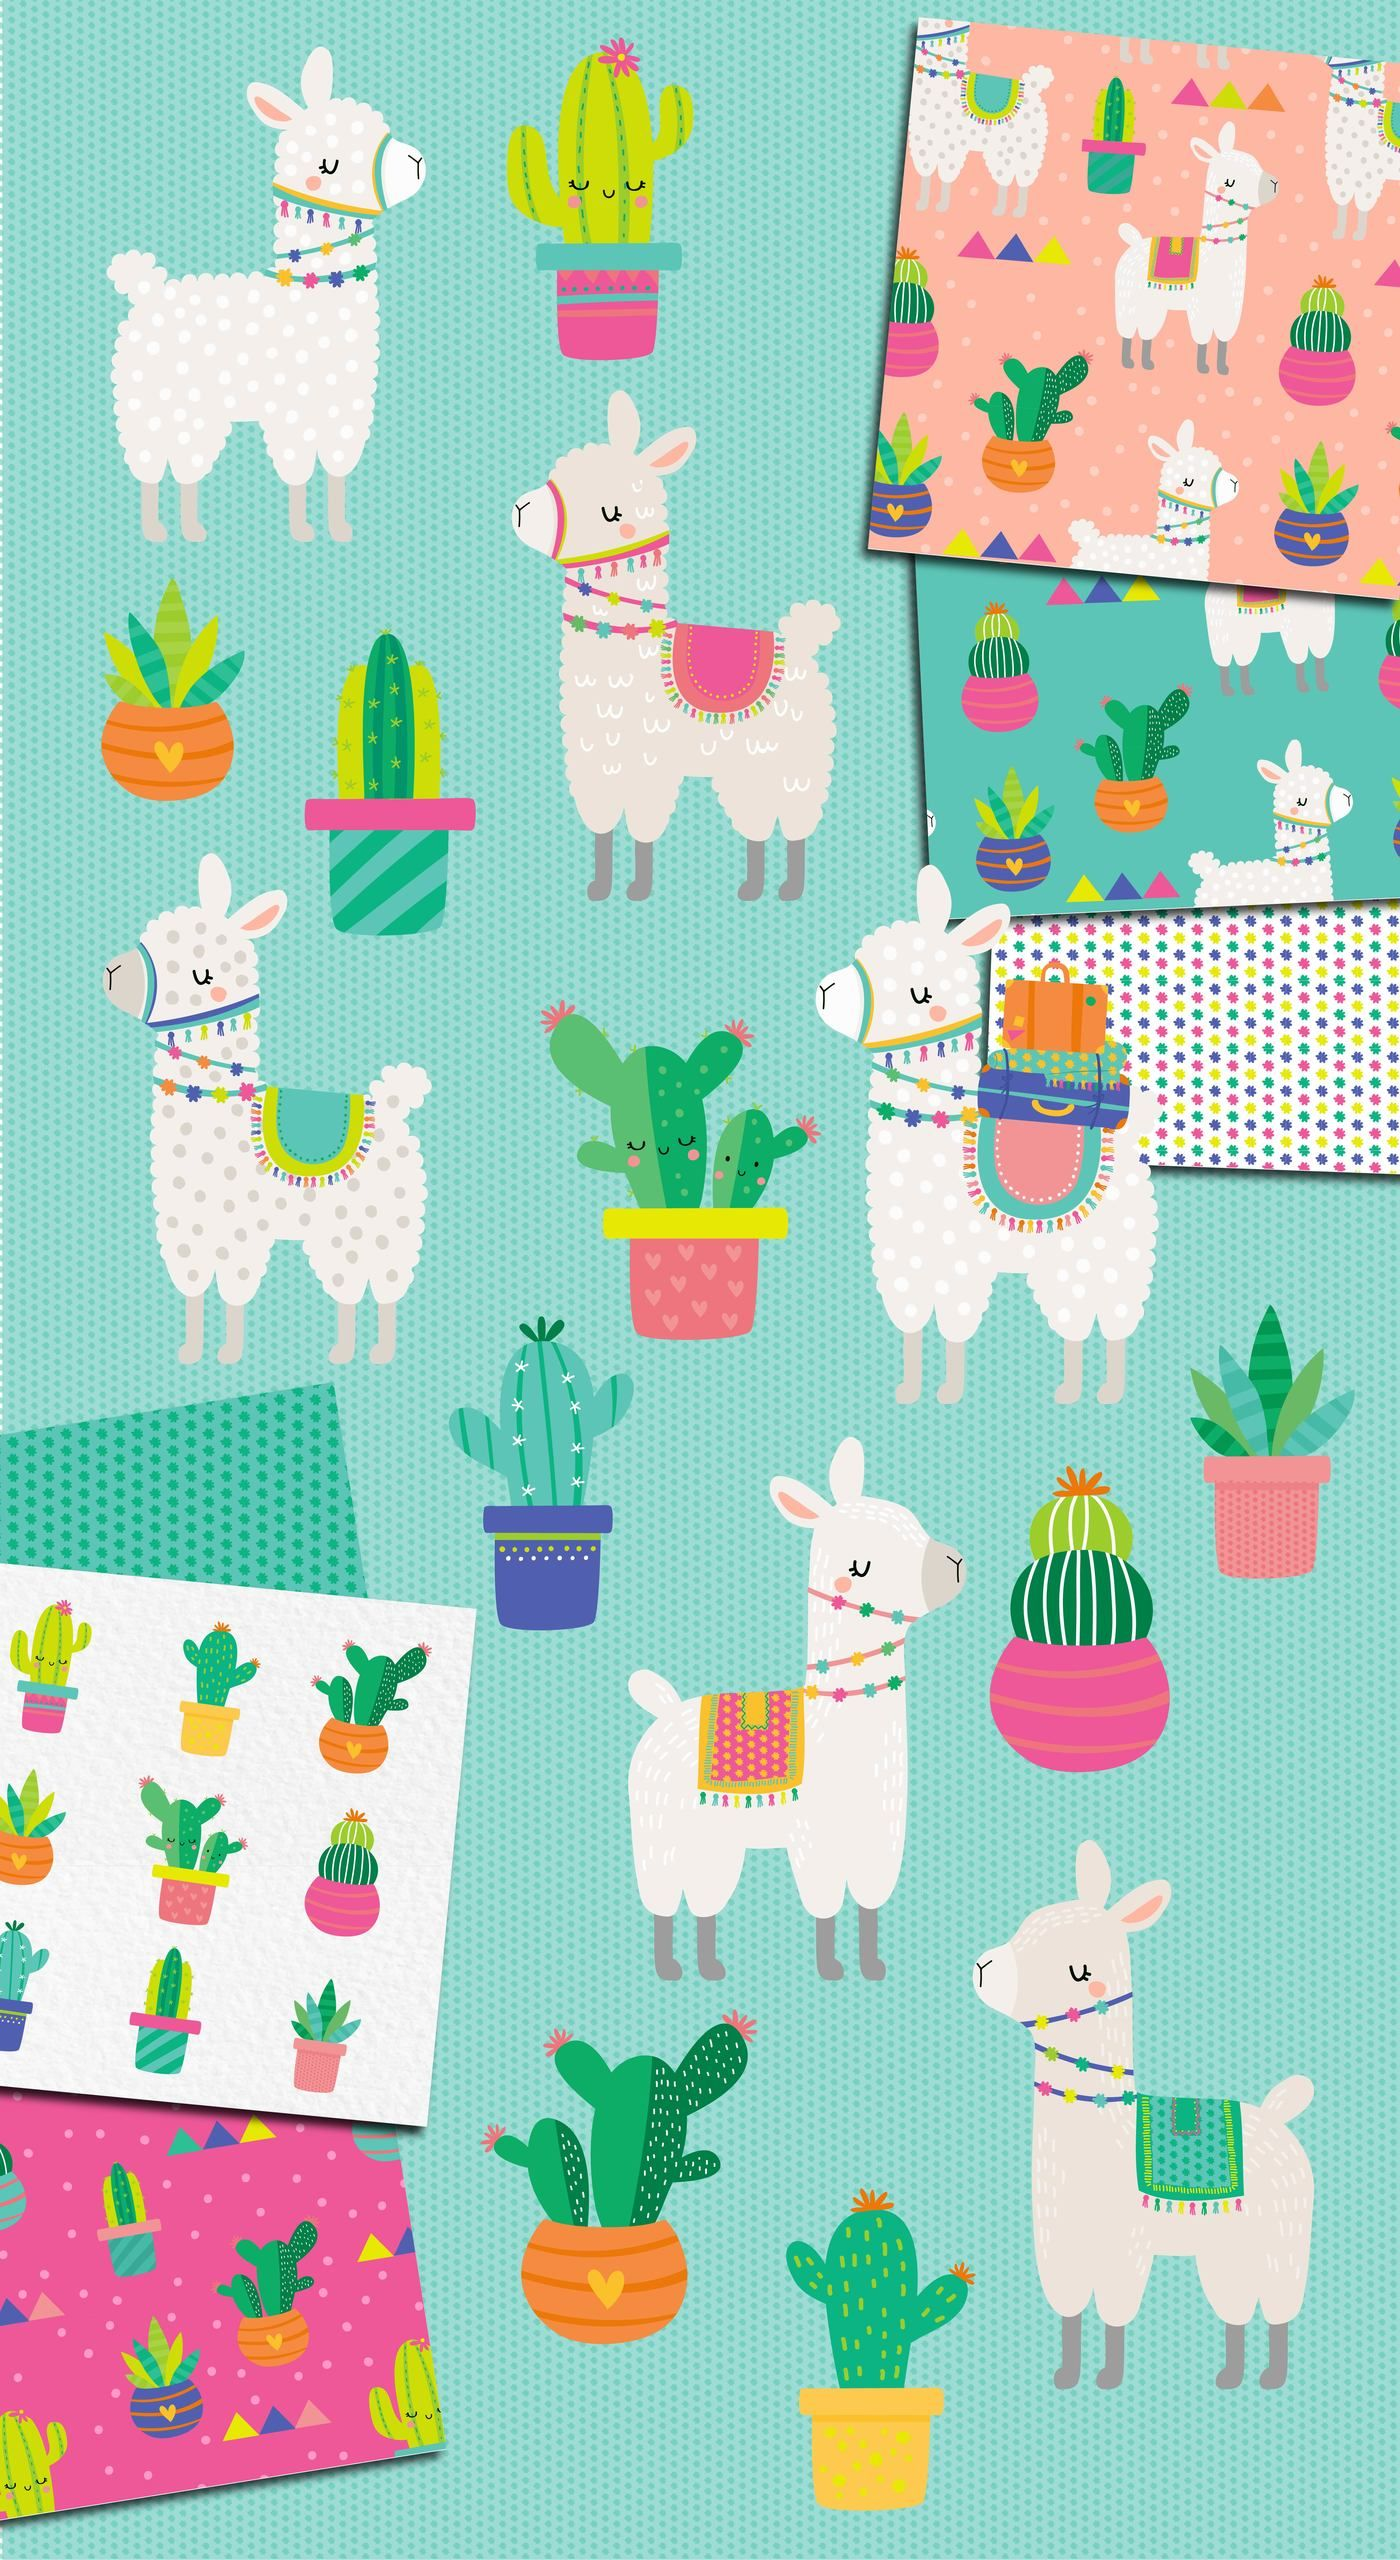 hight resolution of  llama and cactus clipart and patterns